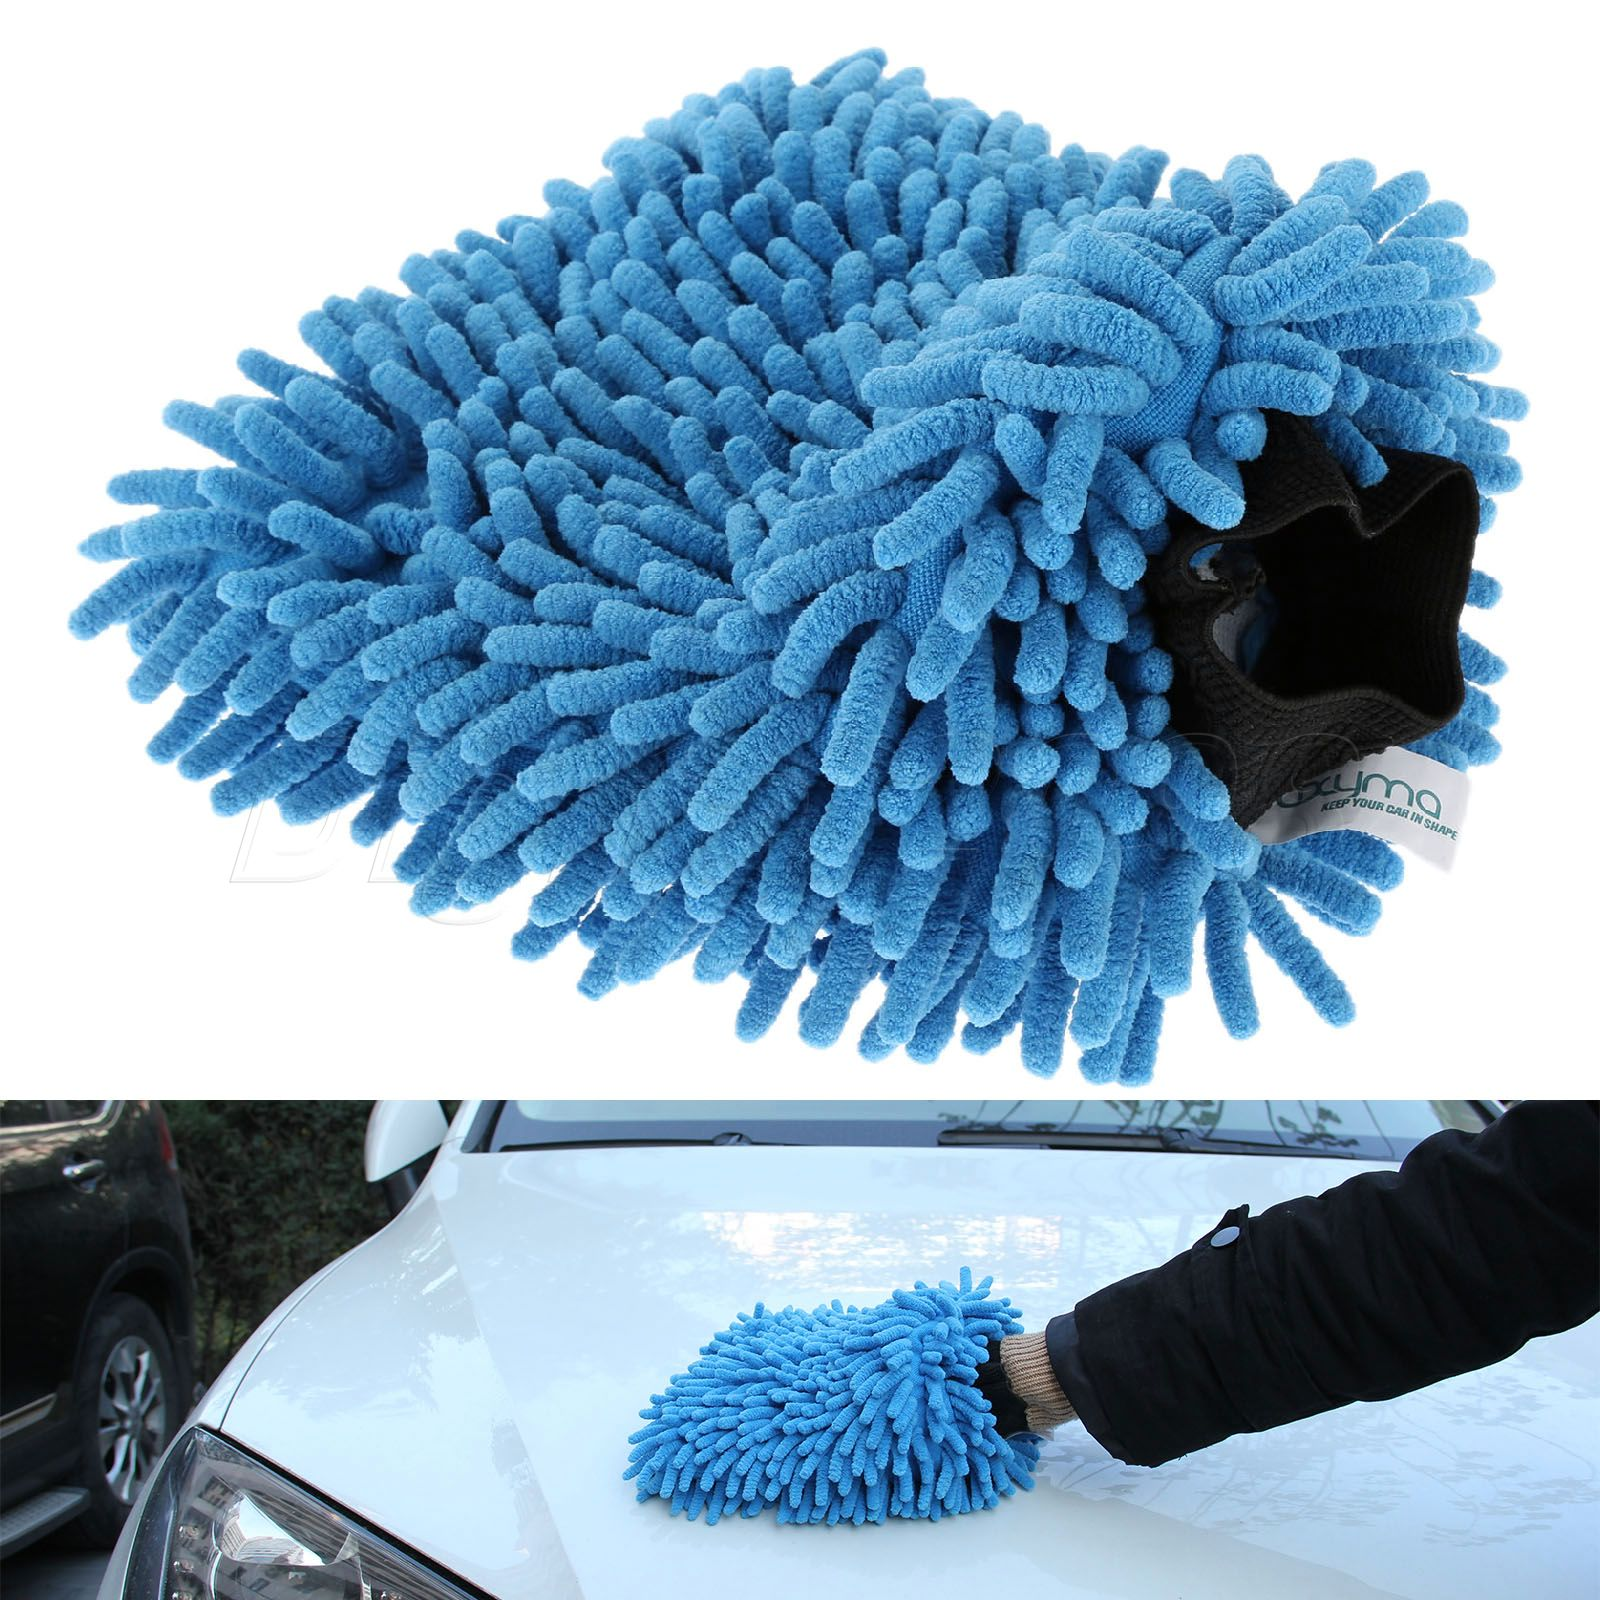 Yetaha Car Wash font b Gloves b font Microfiber Car Cleaning Care Detailing Tools Chenille Soft